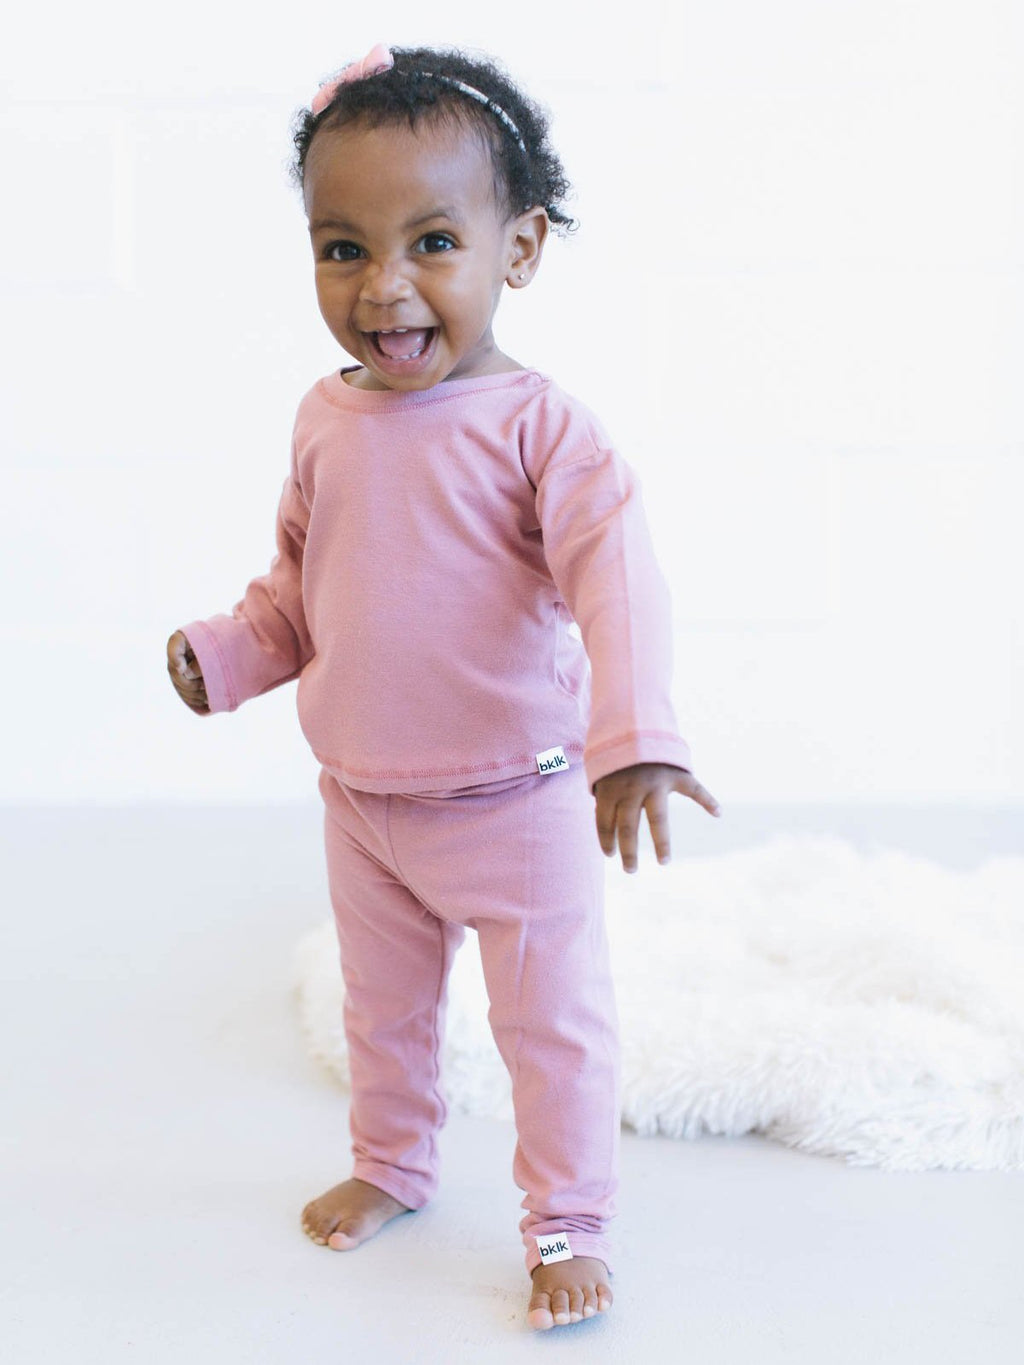 pink, gender neutral colors, matching body t-shirt and pants, soft jersey fabric. Sizes, baby, toddler, big kid, 6 mo 12 mo 1 yr 2 yr 3yr 4yr 5yr 6yr 7yr 8yr old. Ethically + sustainably made in  California, USA. long in back, Leggings w/ 1